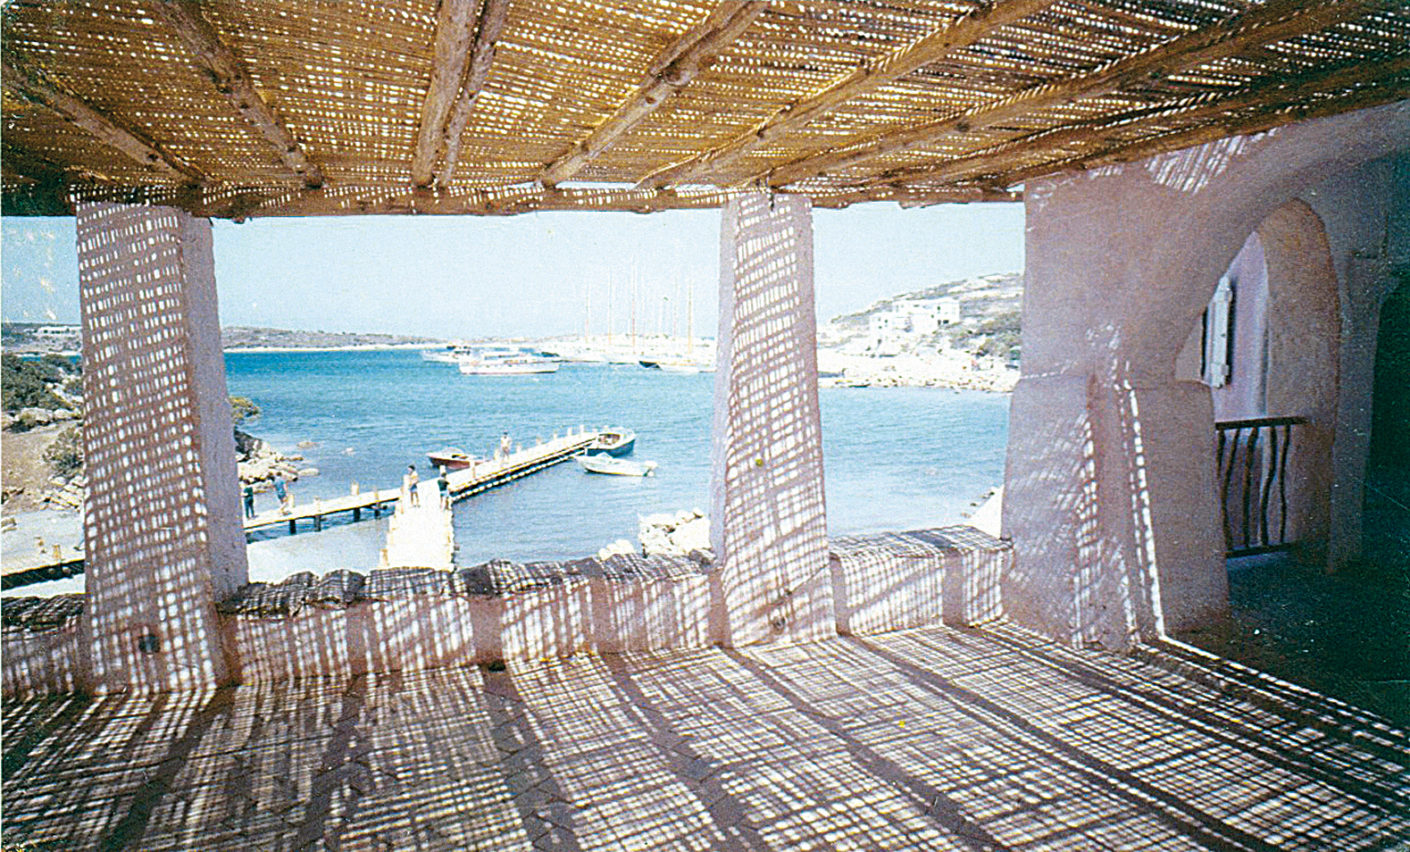 Restaurant terrace in the centre of Porto Cervo (photo c. 1965)